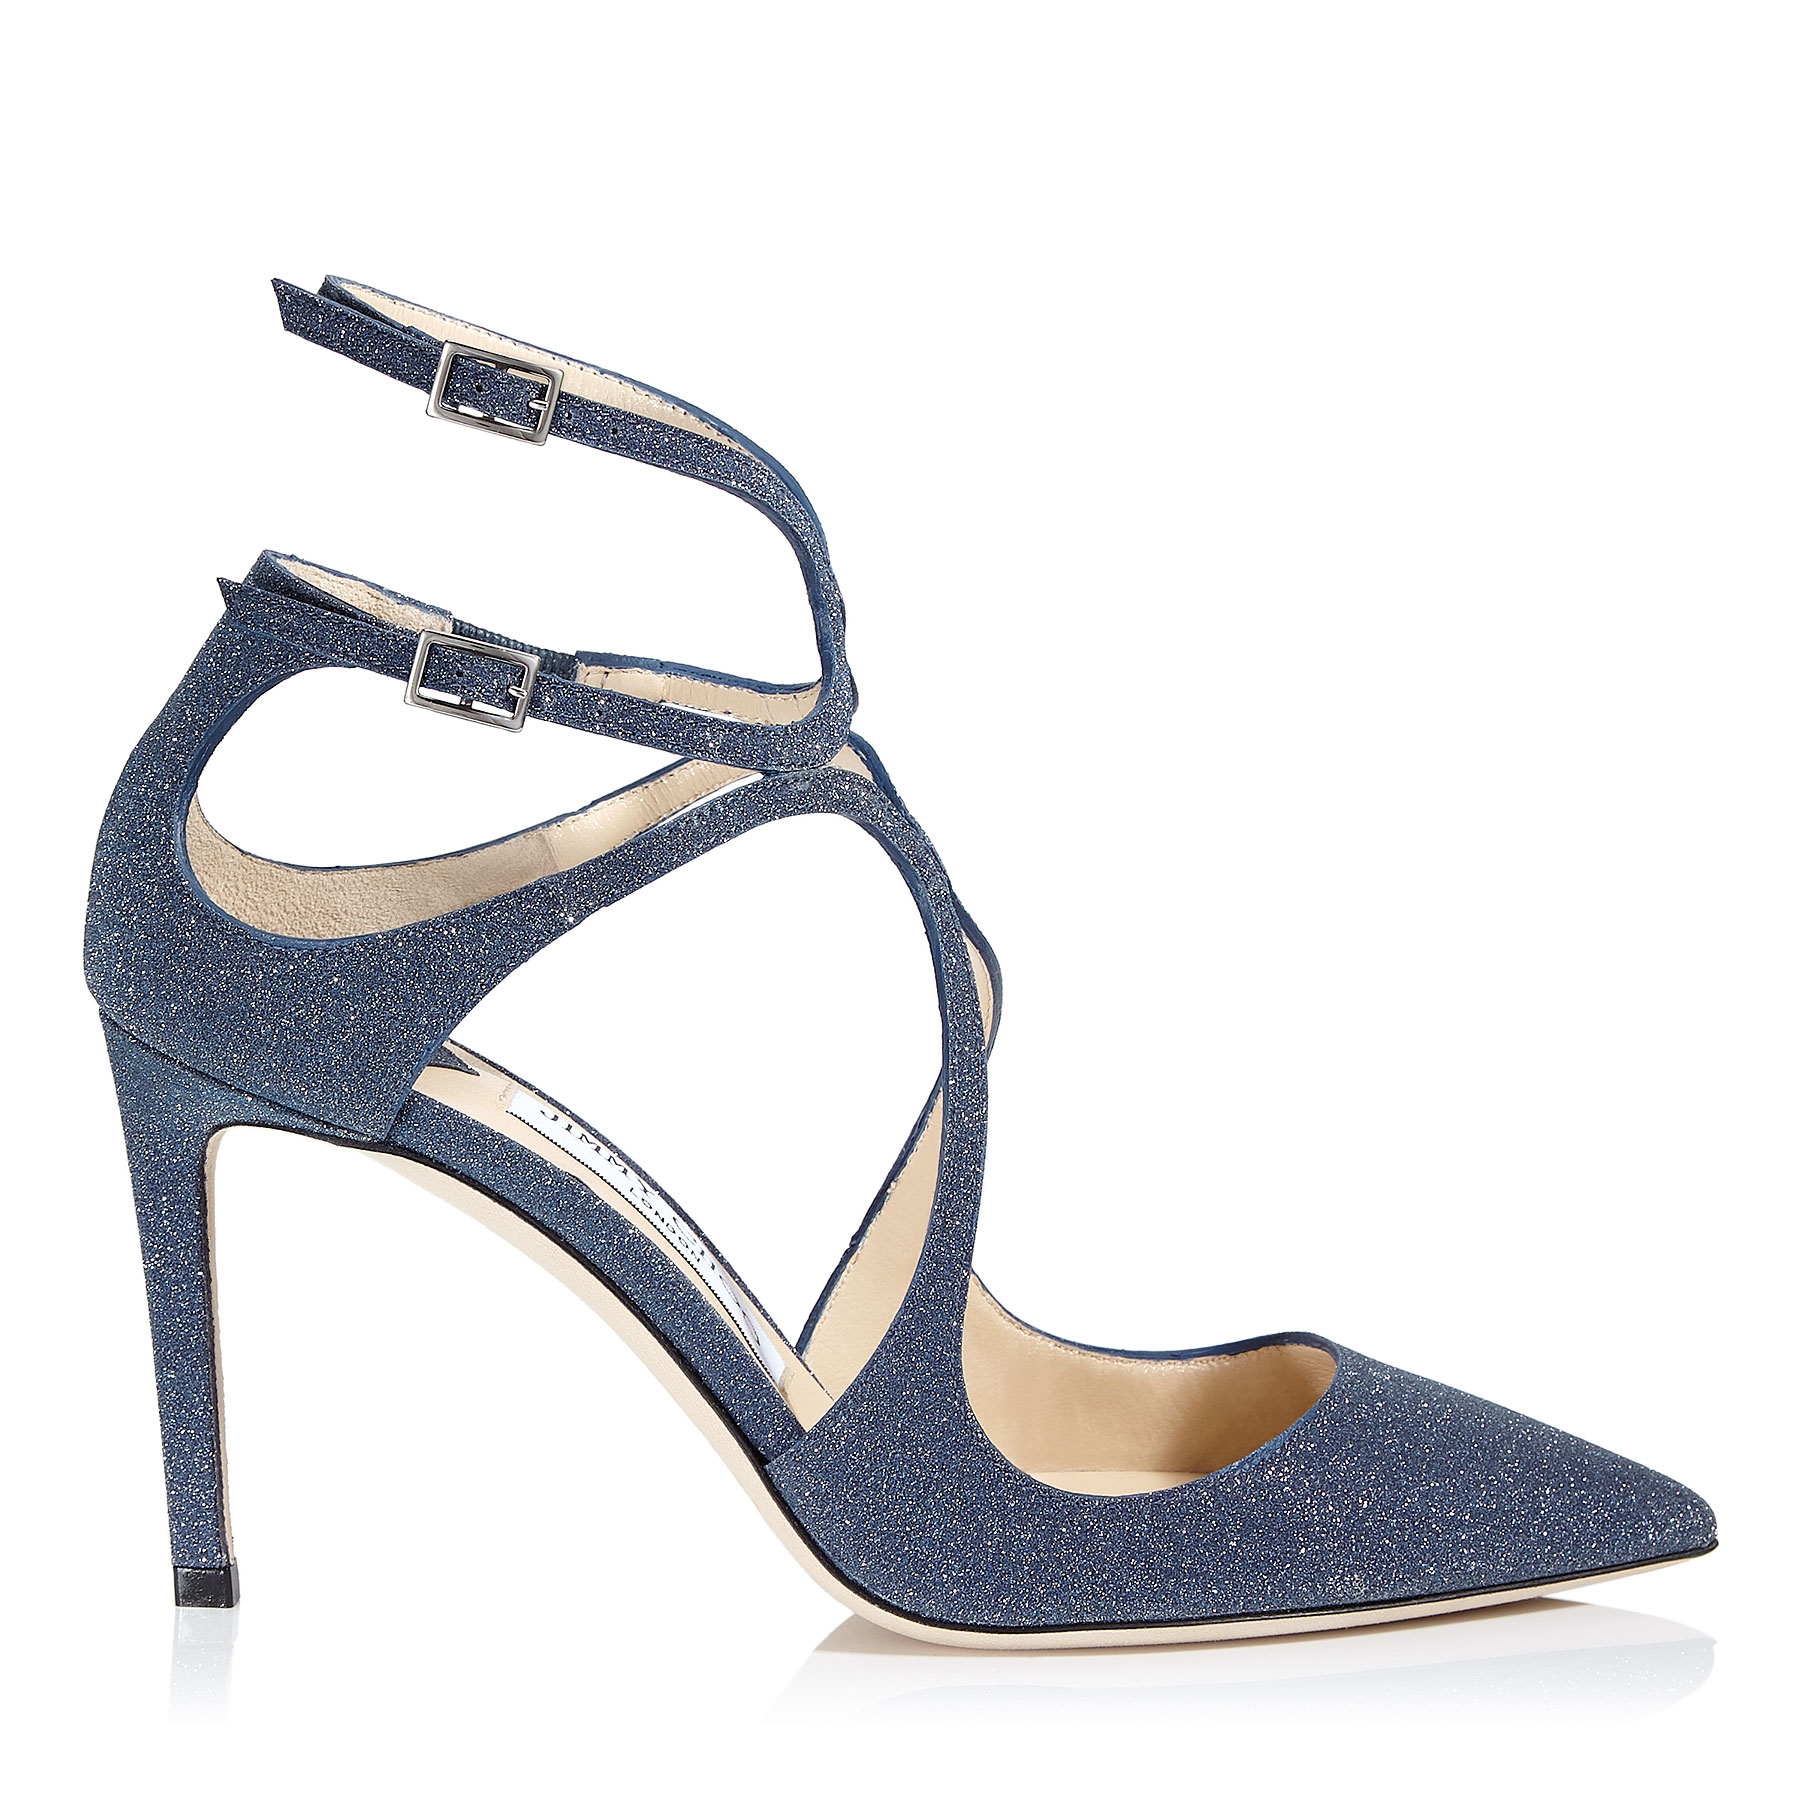 LANCER 85 Navy Fine Glitter Leather Pointy Toe Pumps by Jimmy Choo